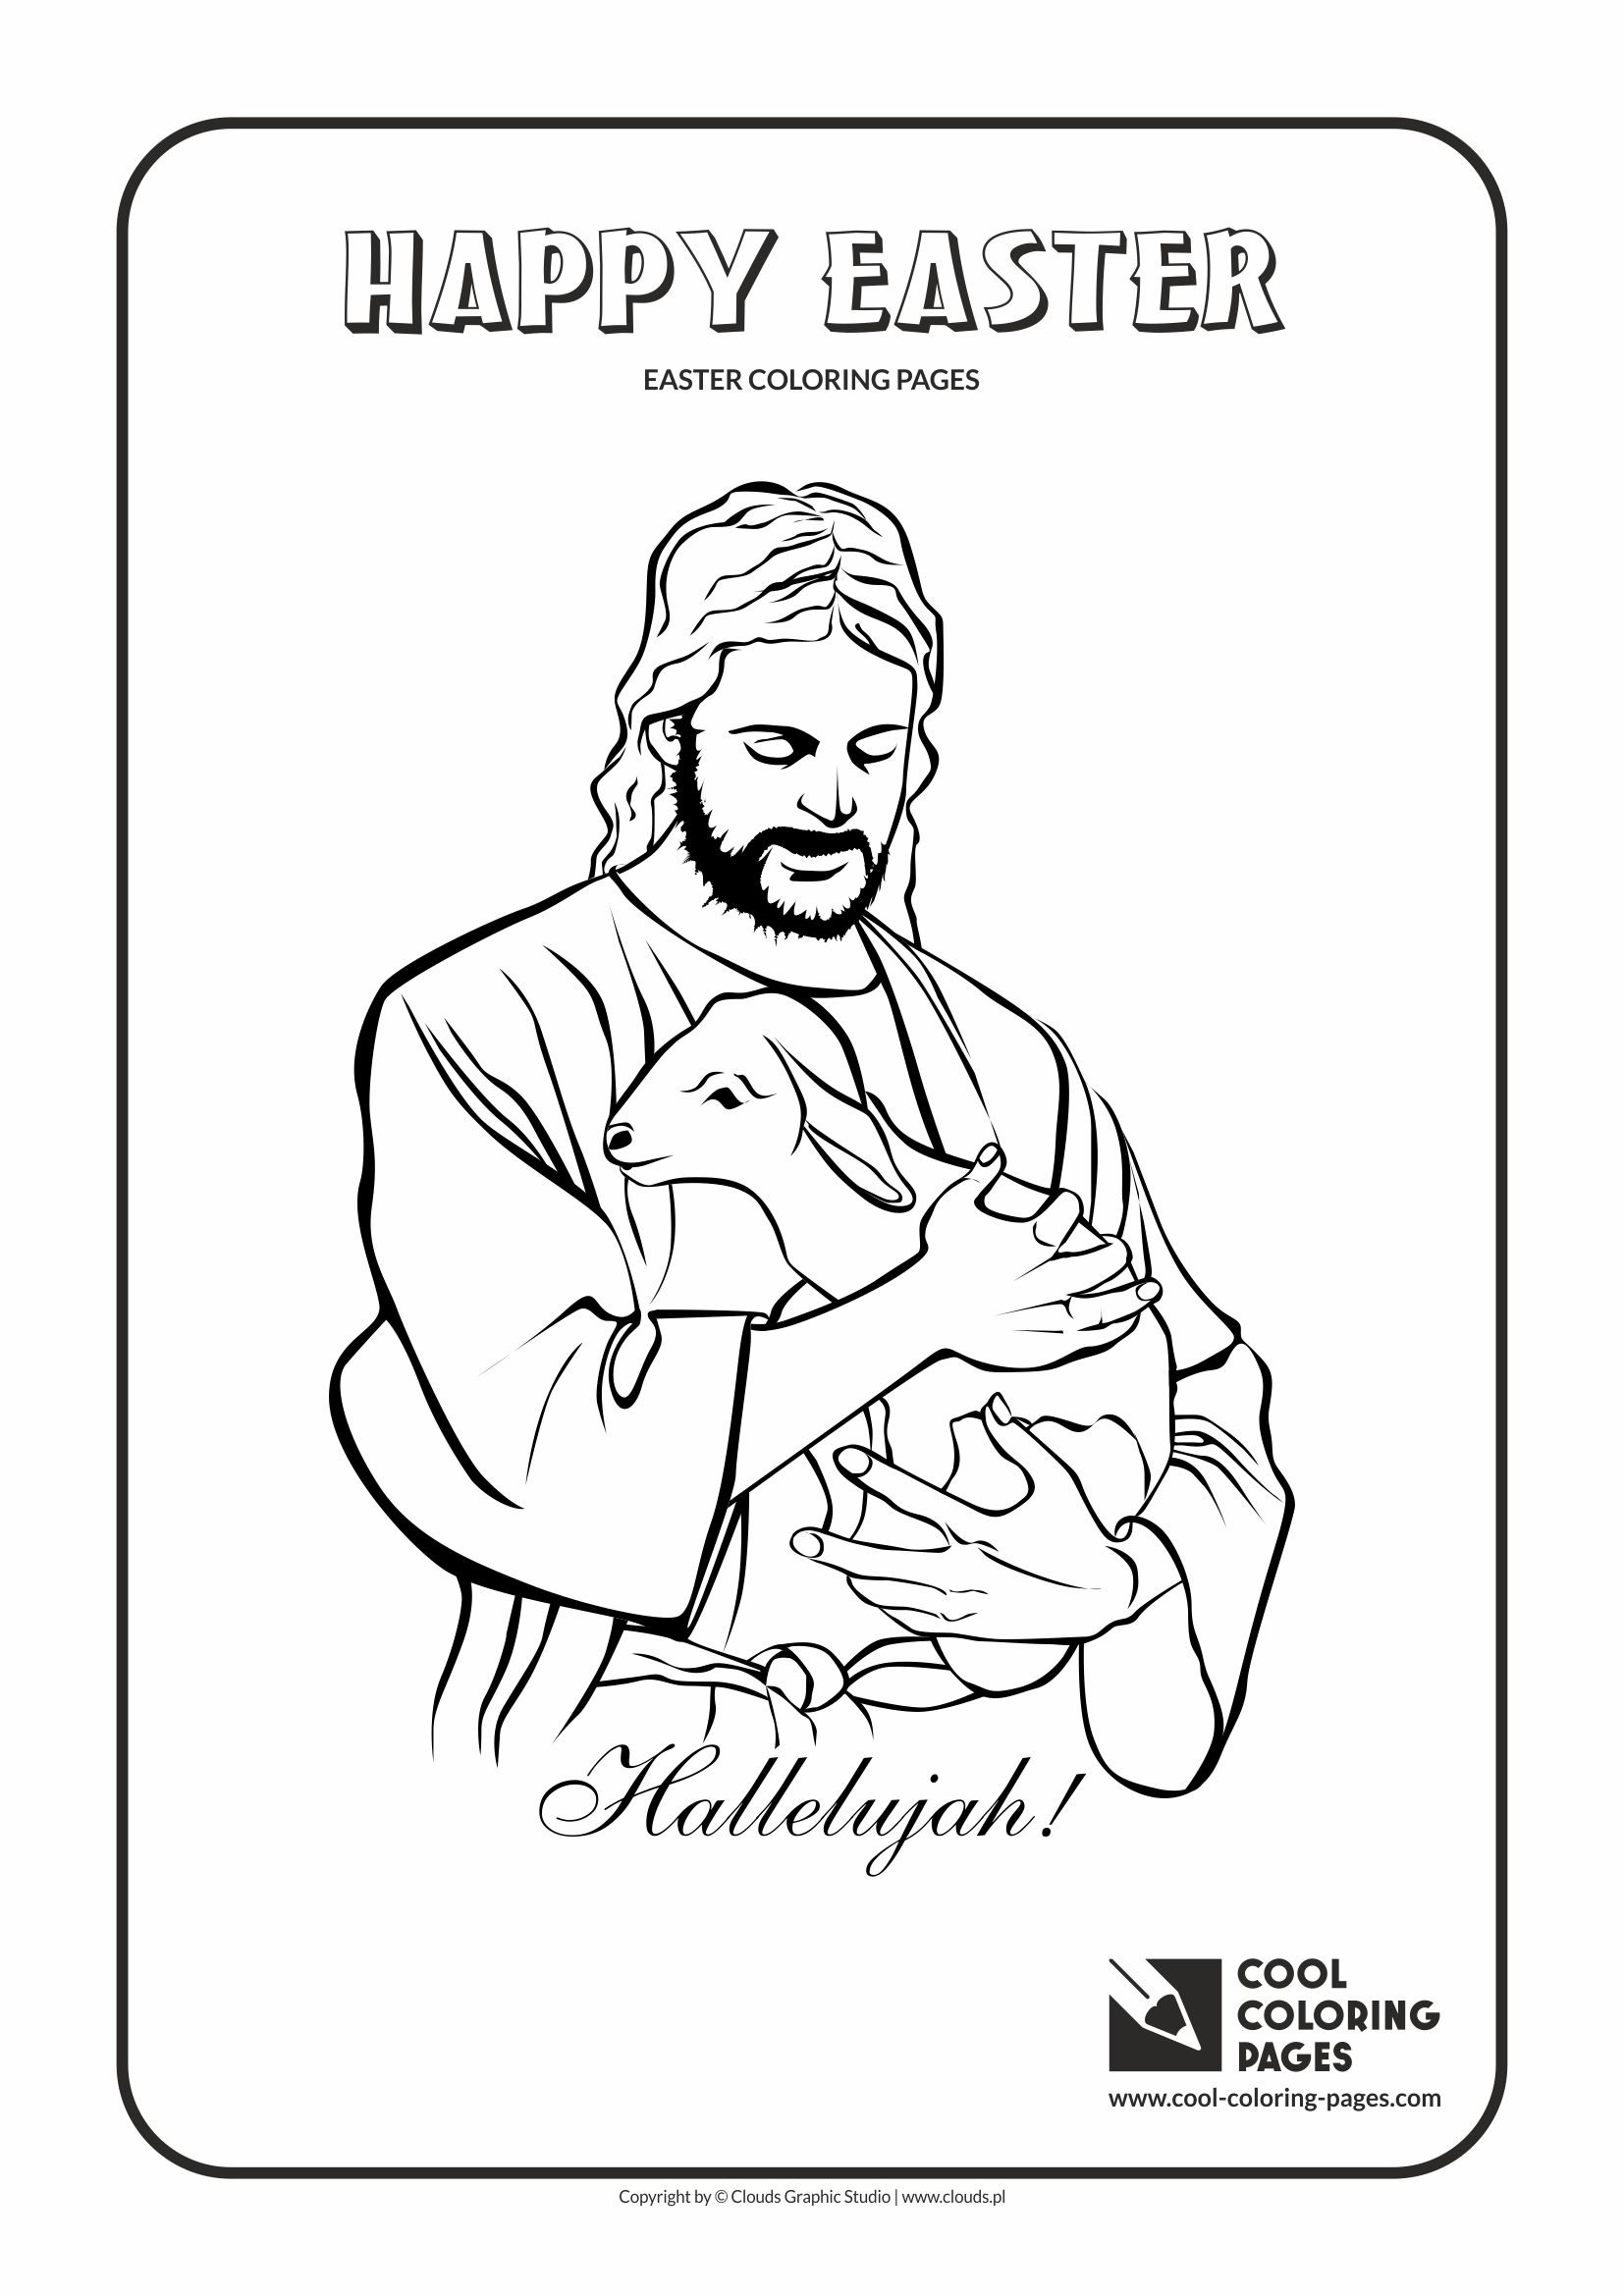 Lambs Coloring Pages - Coloring Home